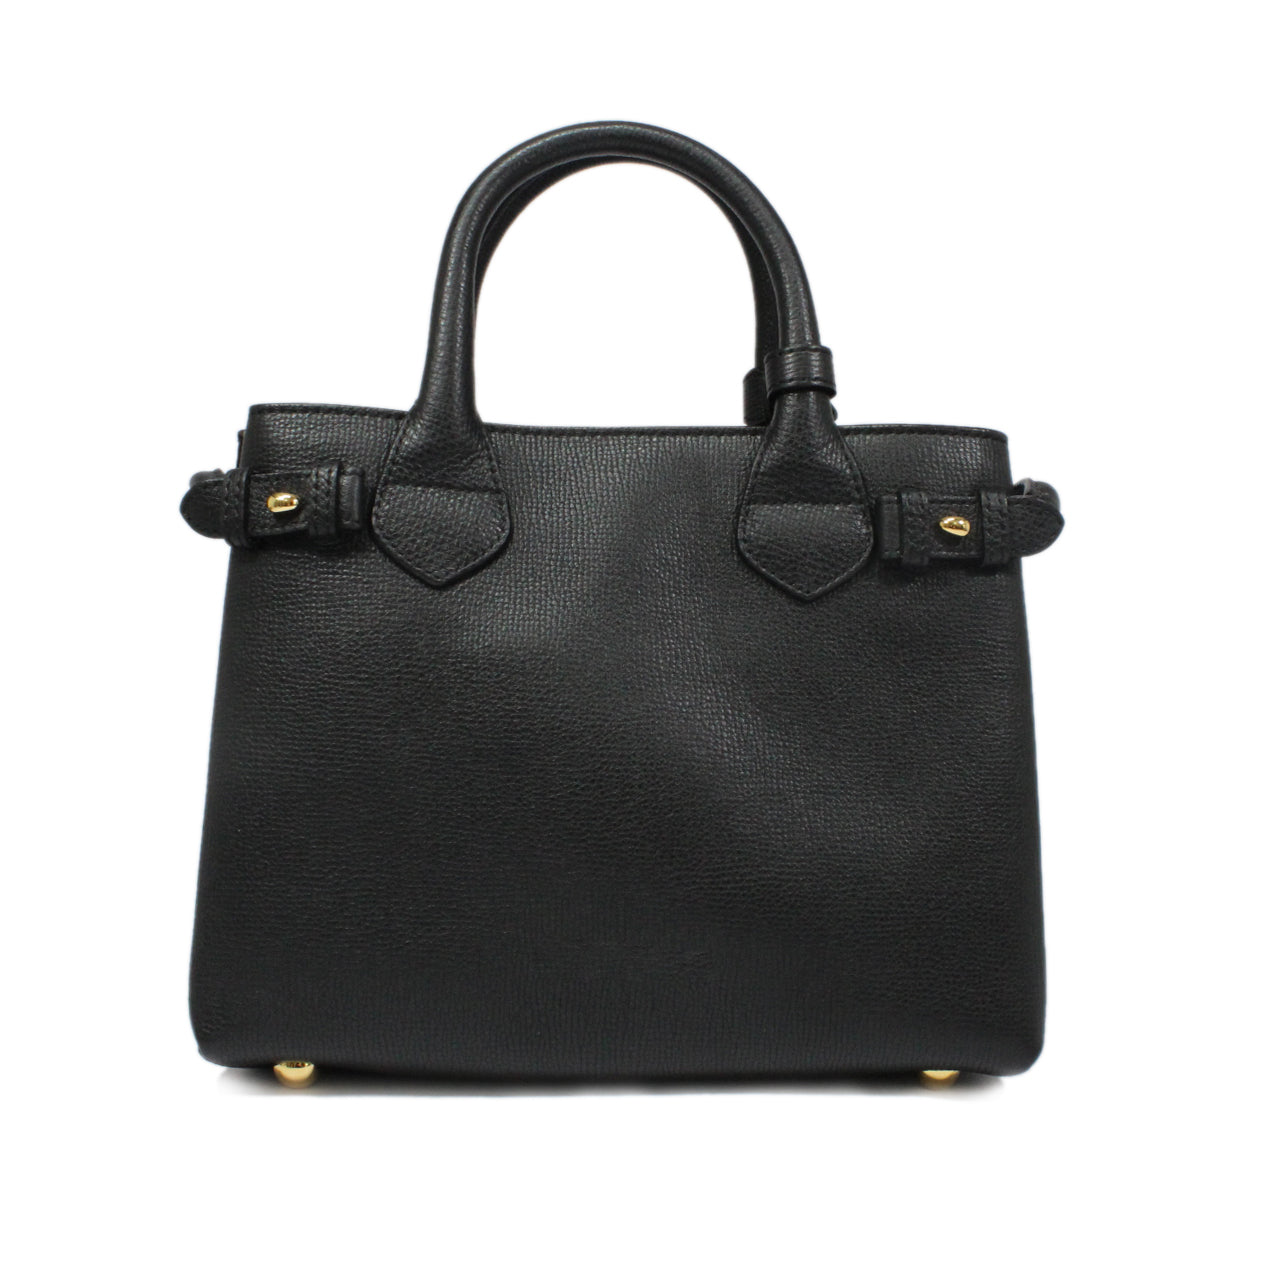 Burberry Banner House-Check Leather Tote